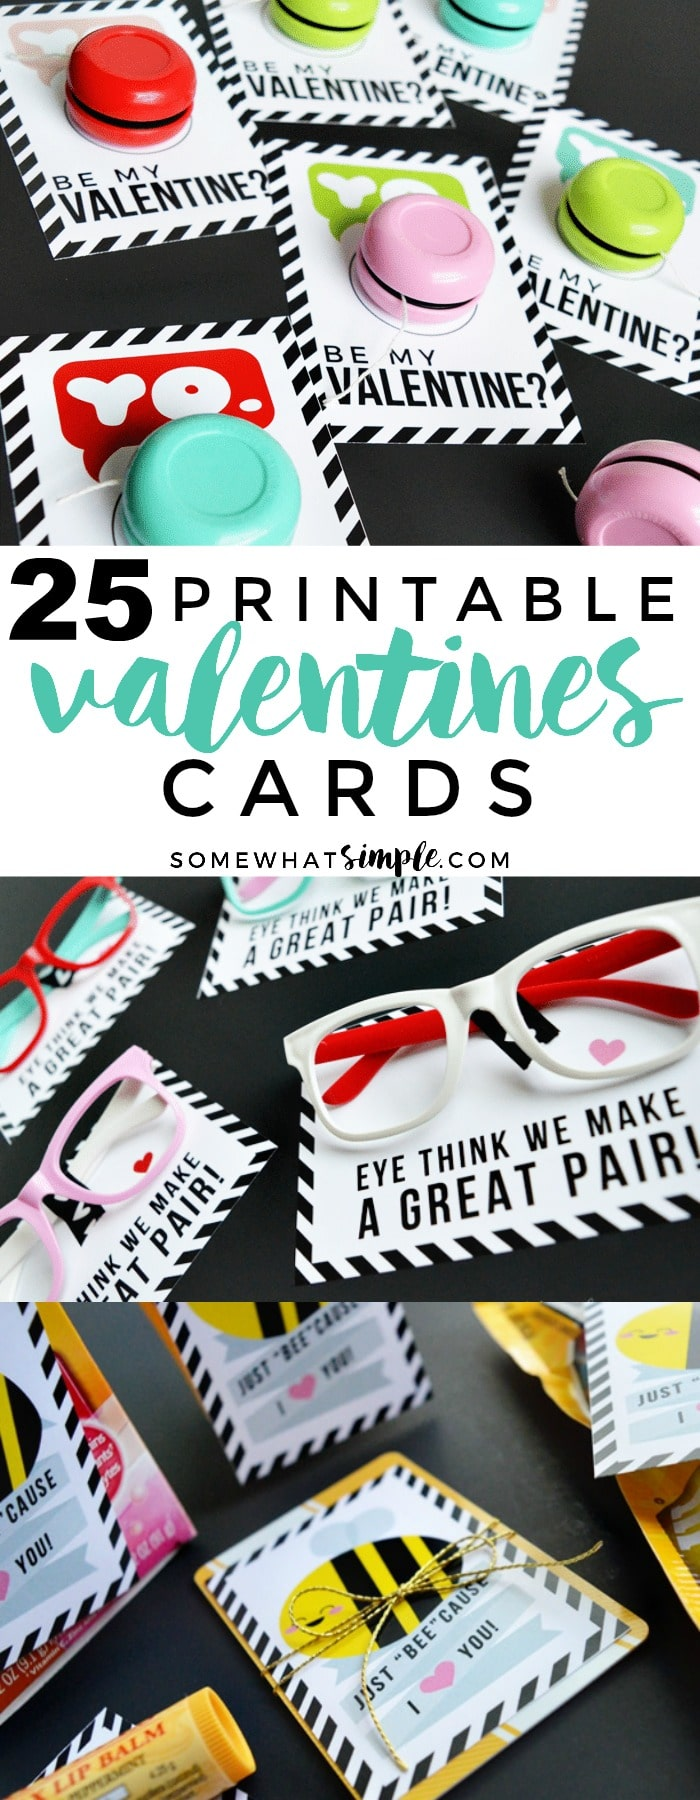 Each year we update our list of favorite Printable Valentine Cards with the newest and cutest ideas on the web! Here is our list of top 25 - take a look! via @somewhatsimple